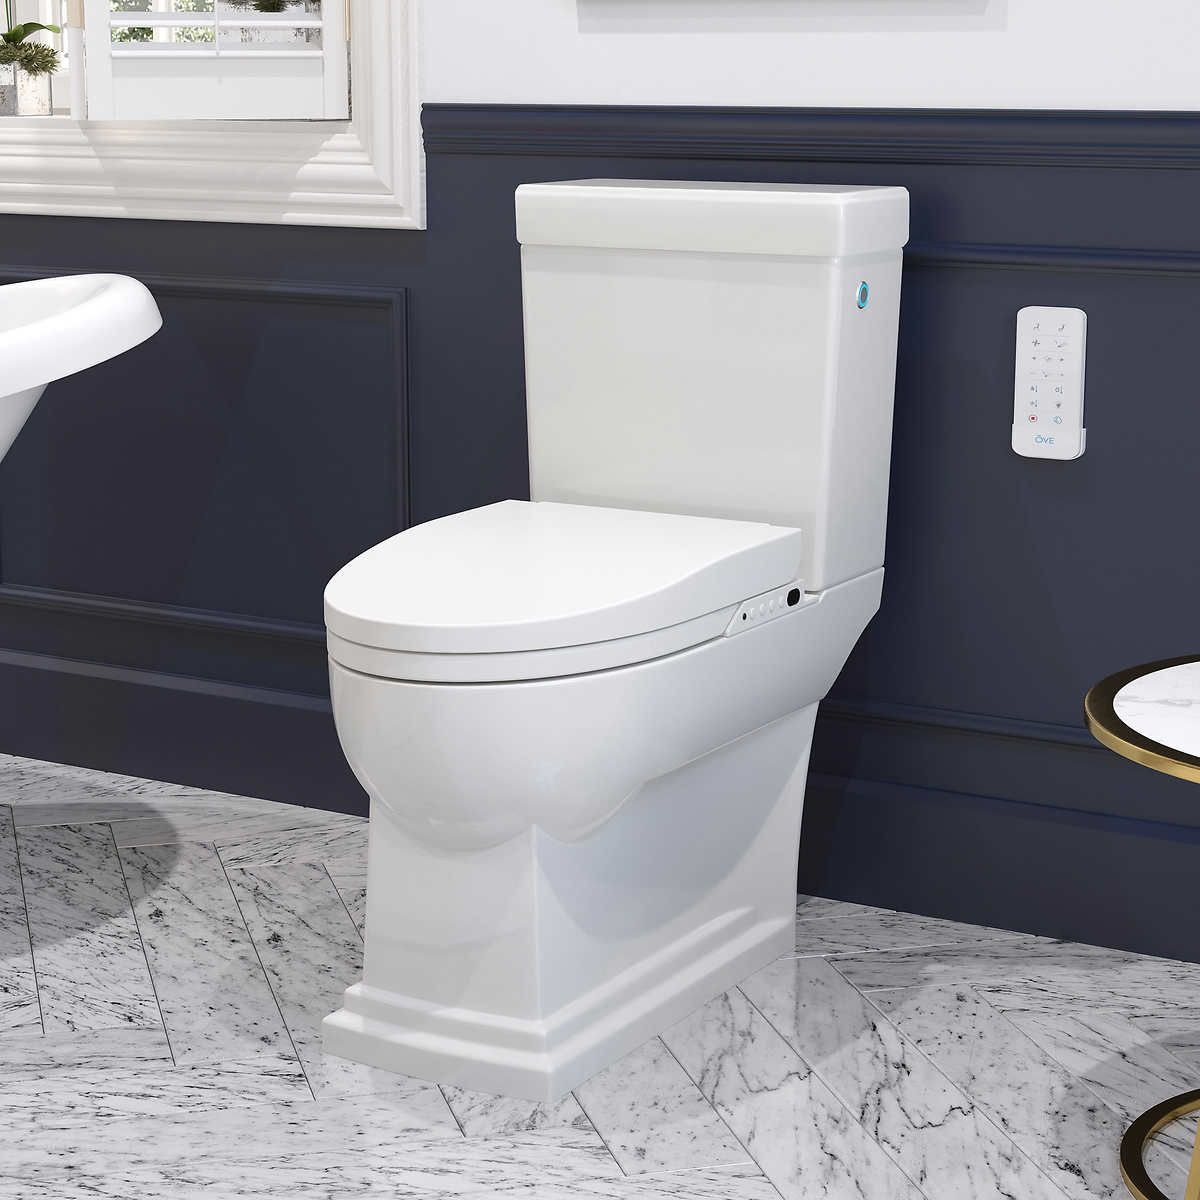 Irenne Classic Smart Bidet Toilet By Ove In 2020 Bidet Toilet Bidet Toilet